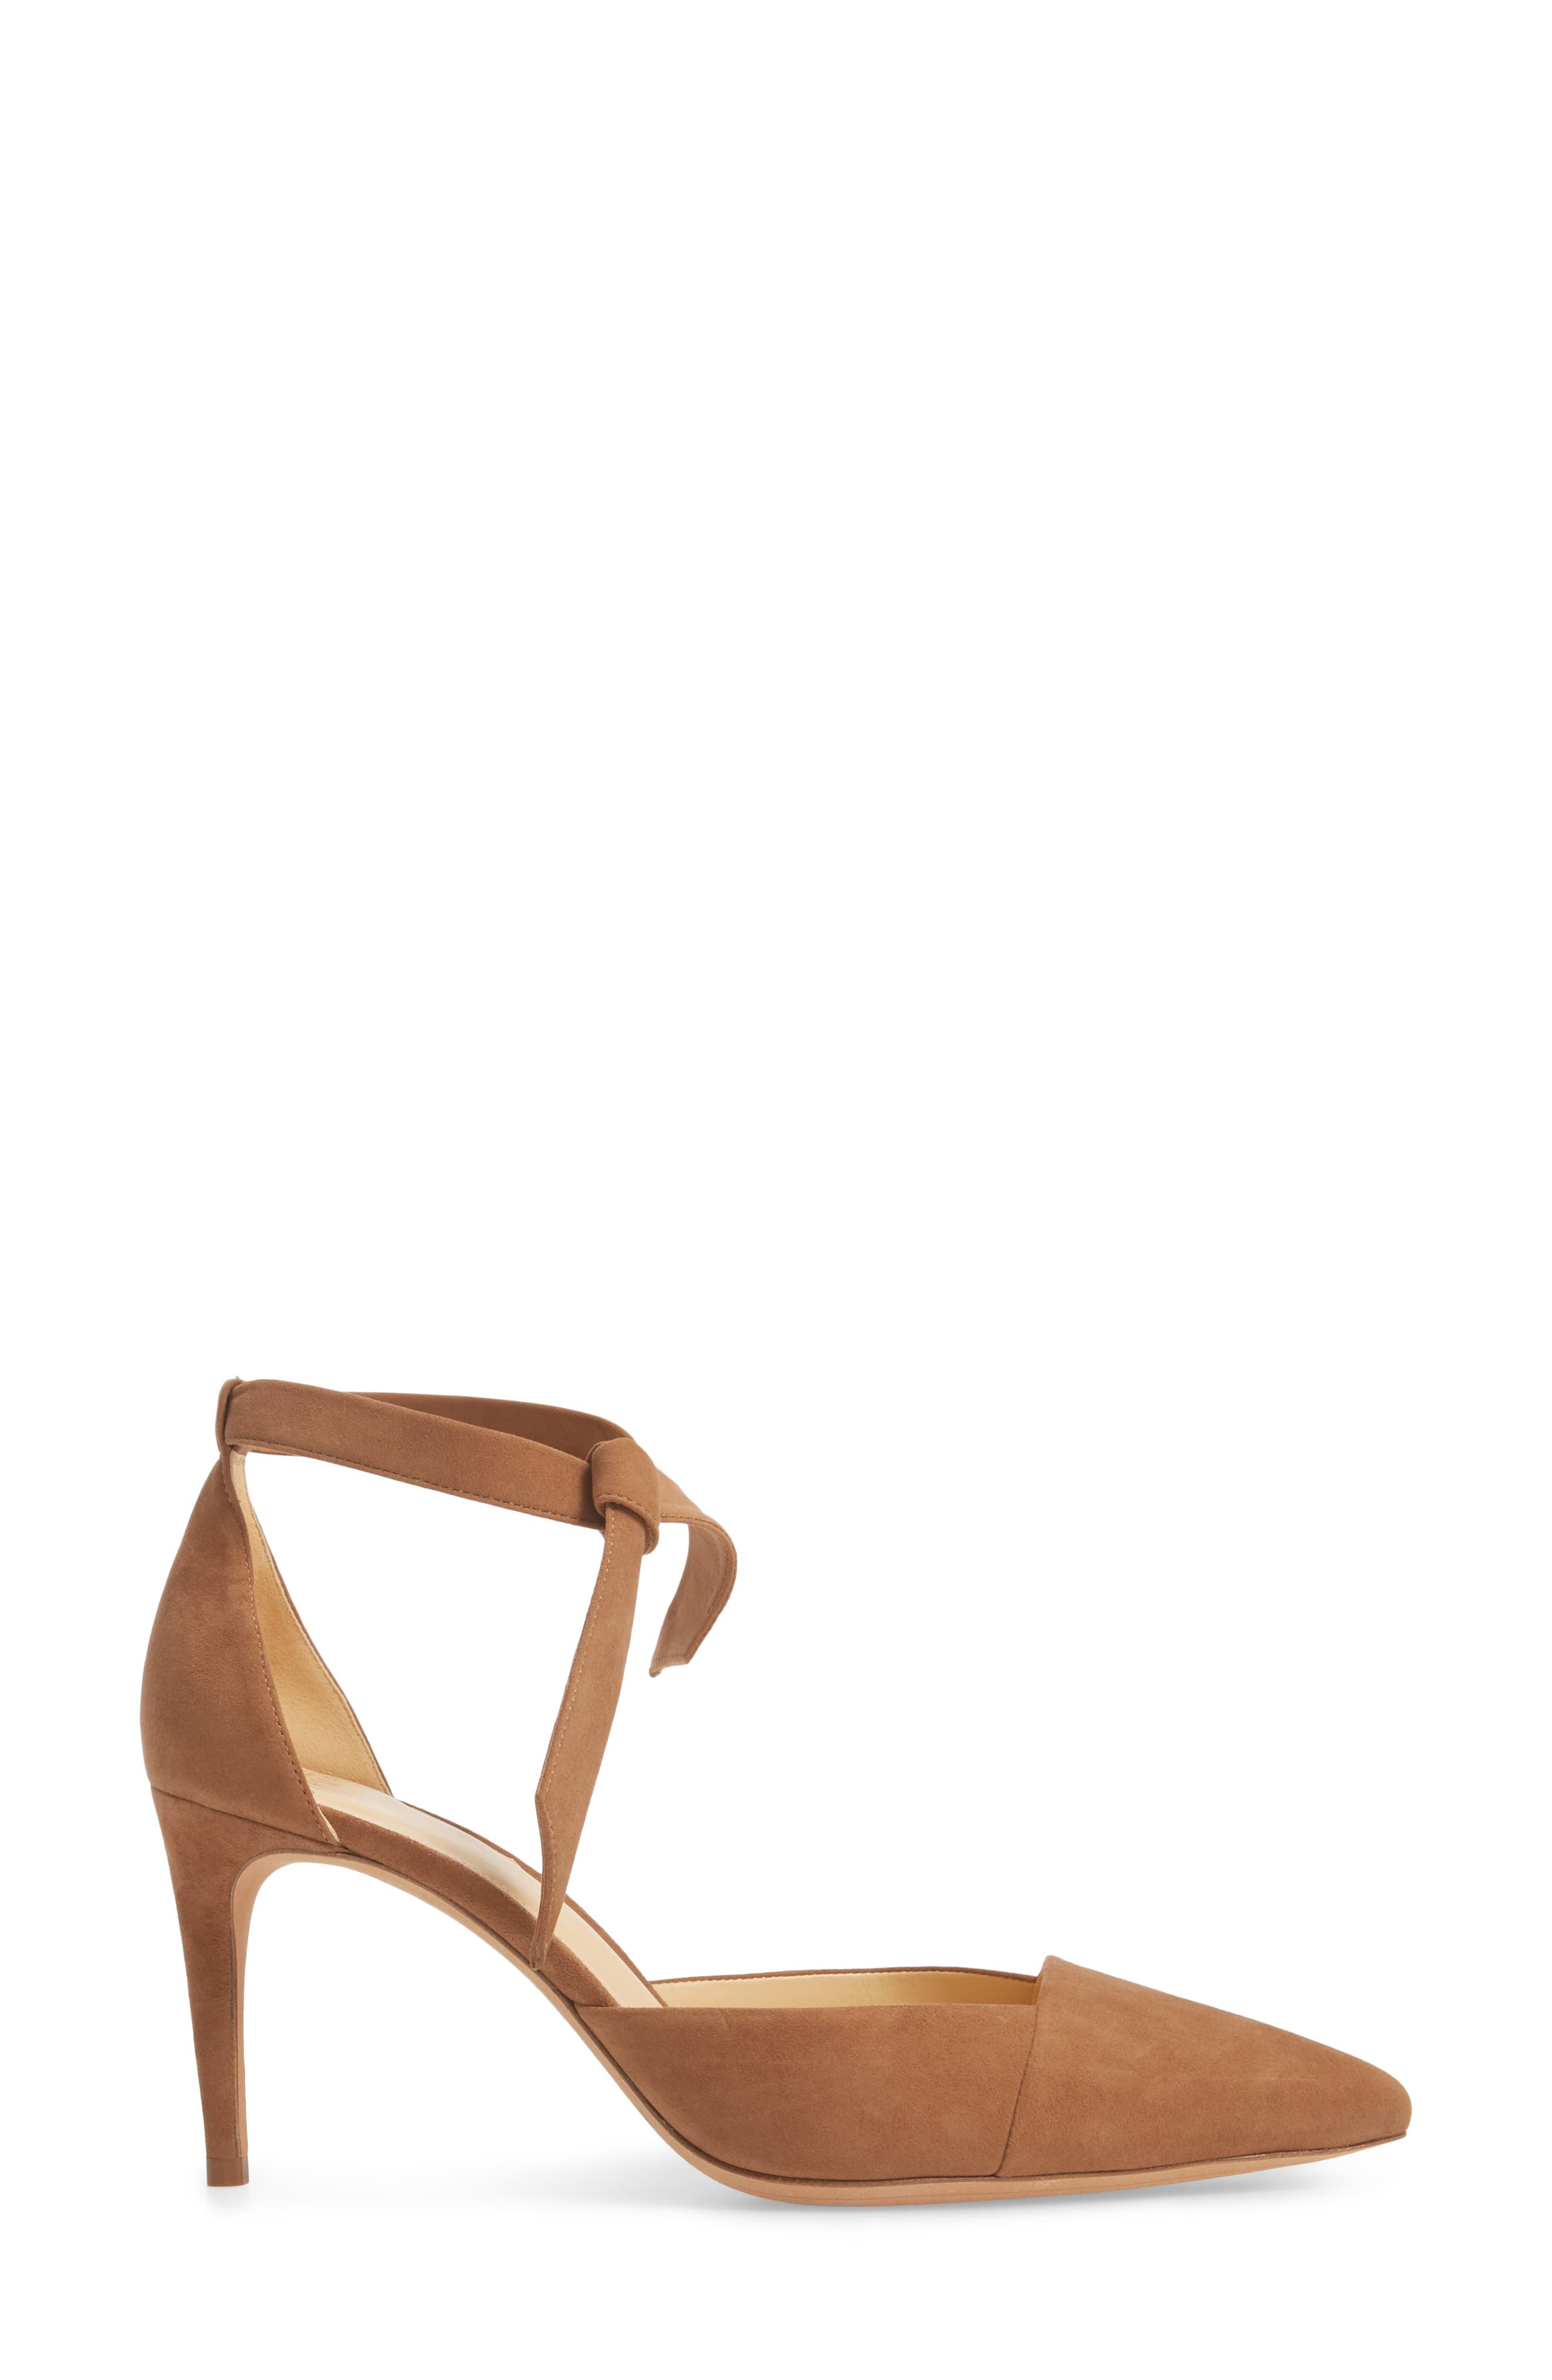 Azalea Tie Strap Pump,                             Alternate thumbnail 3, color,                             LIGHT BEIGE